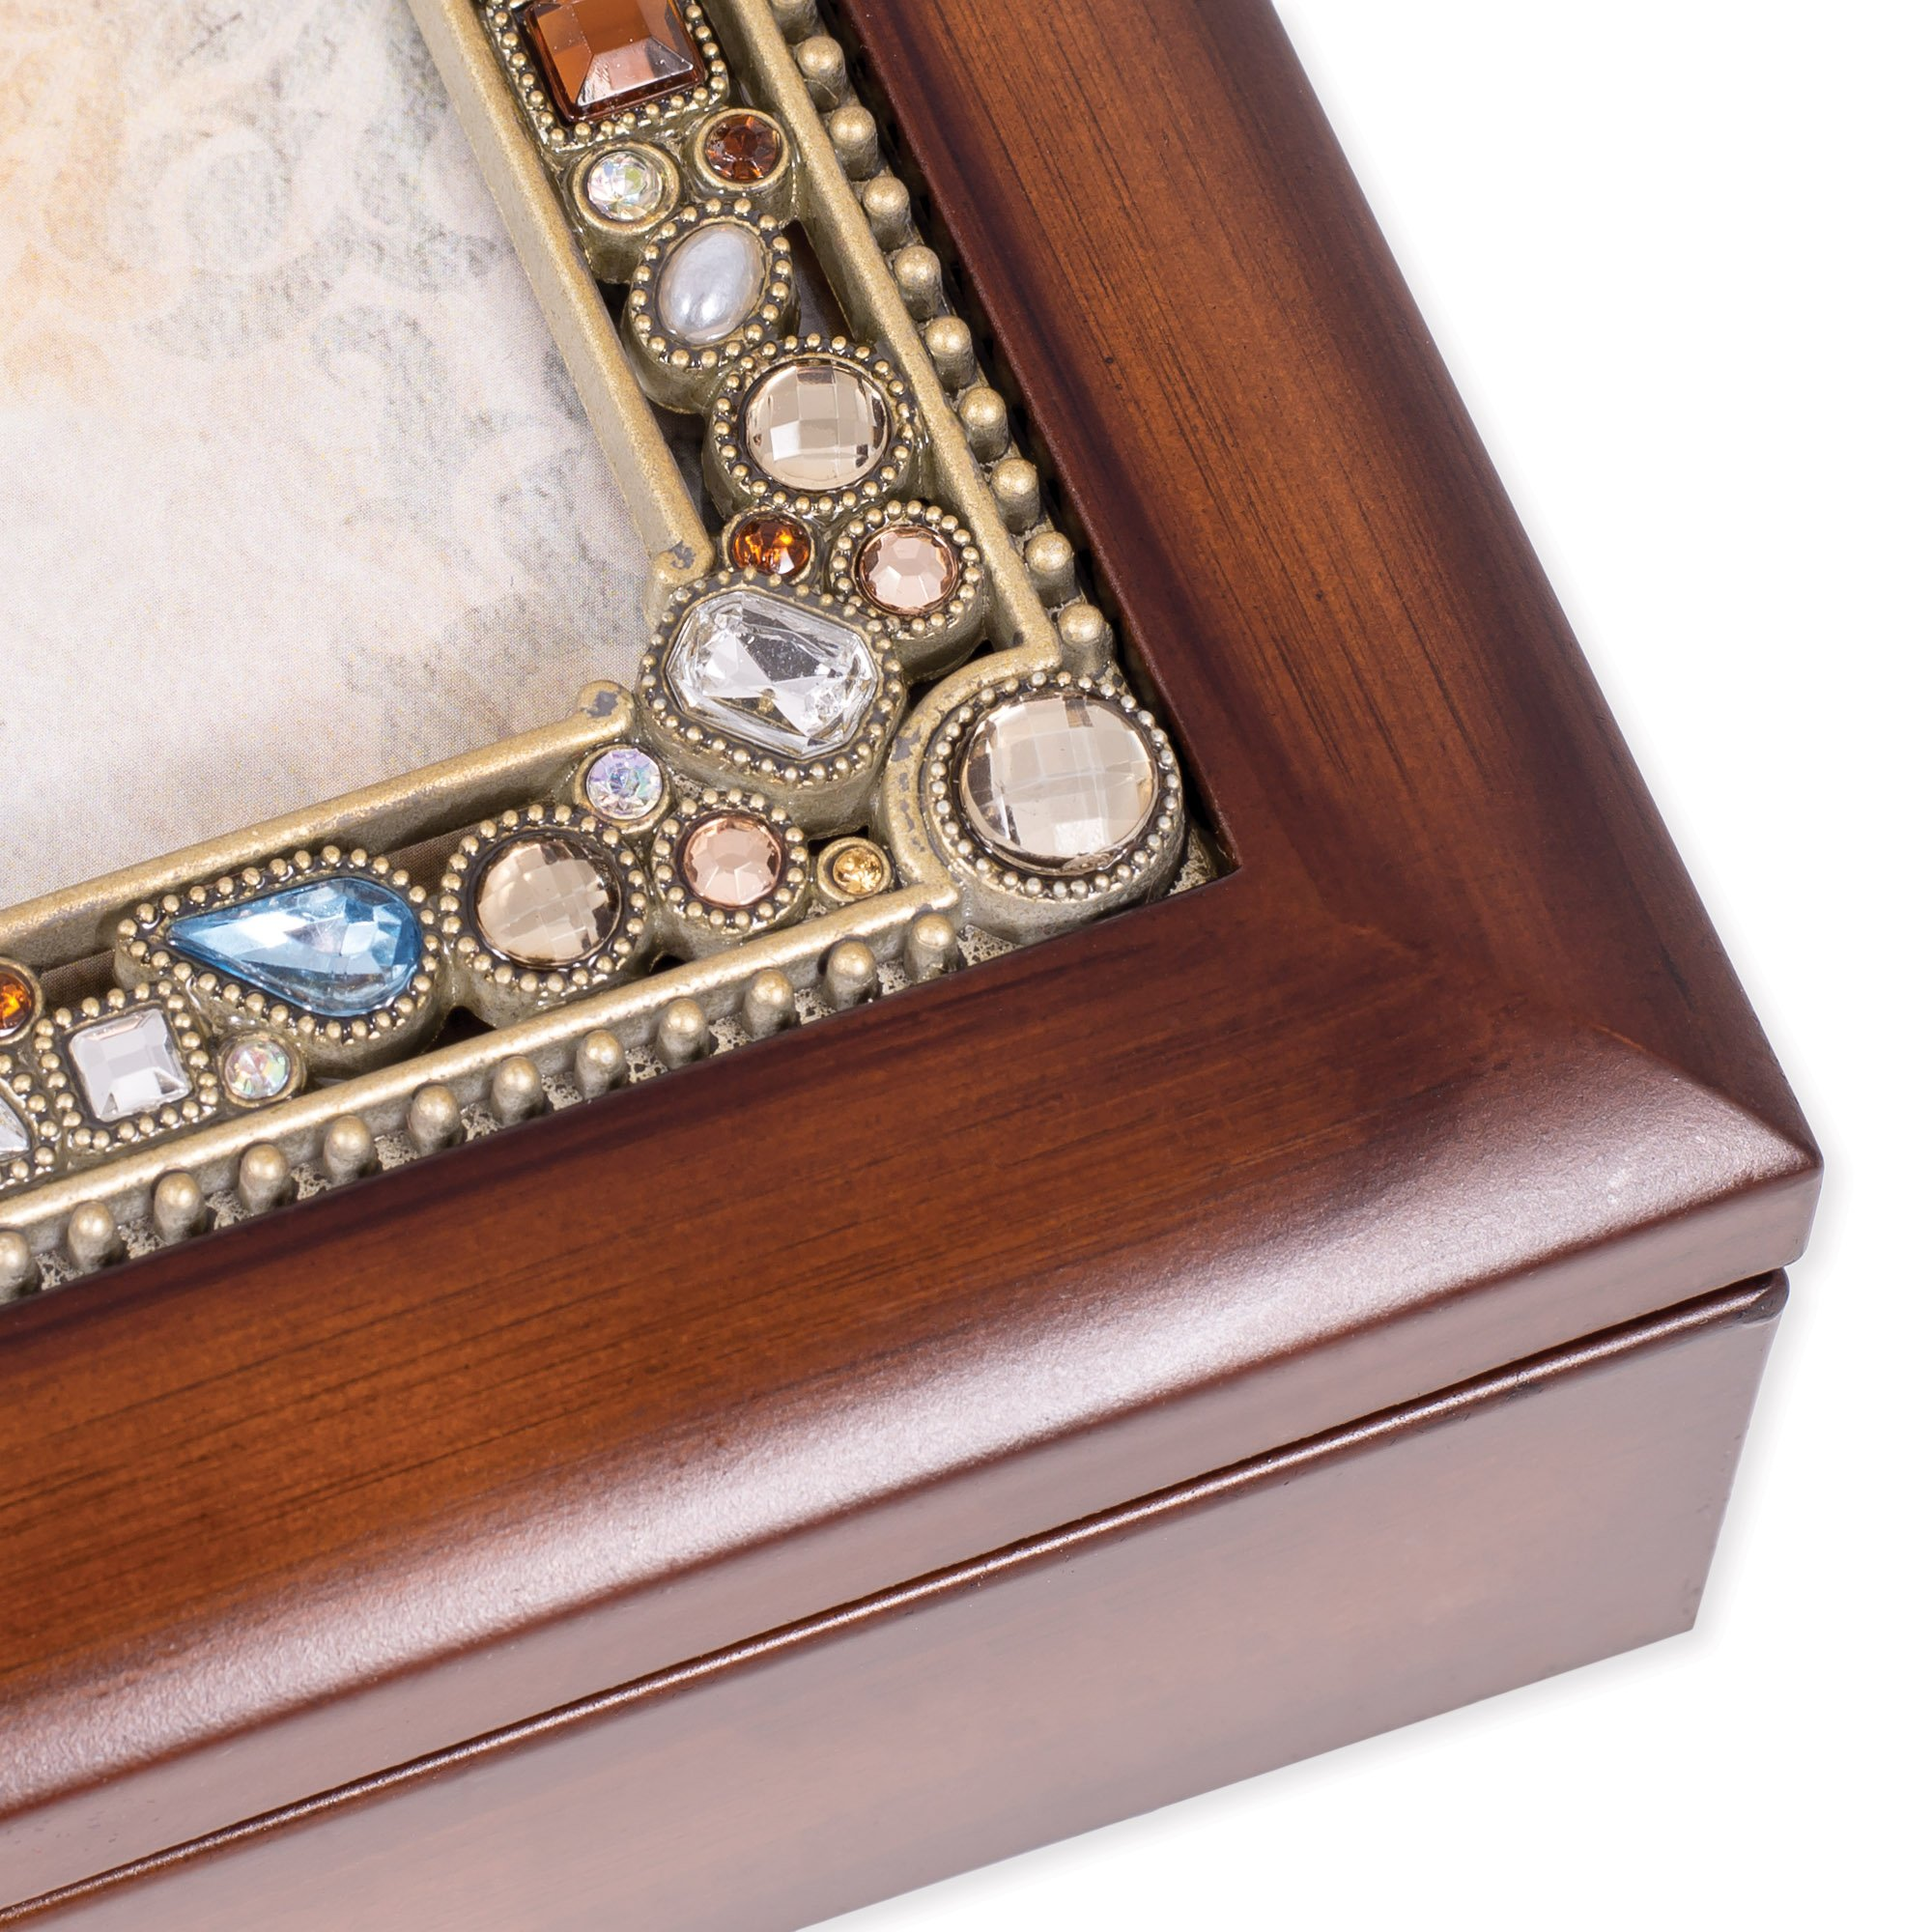 Cottage Garden Friend Jeweled Woodgrain Jewelry Music Box - Plays Tune Thats What Friends Are For by Cottage Garden (Image #6)